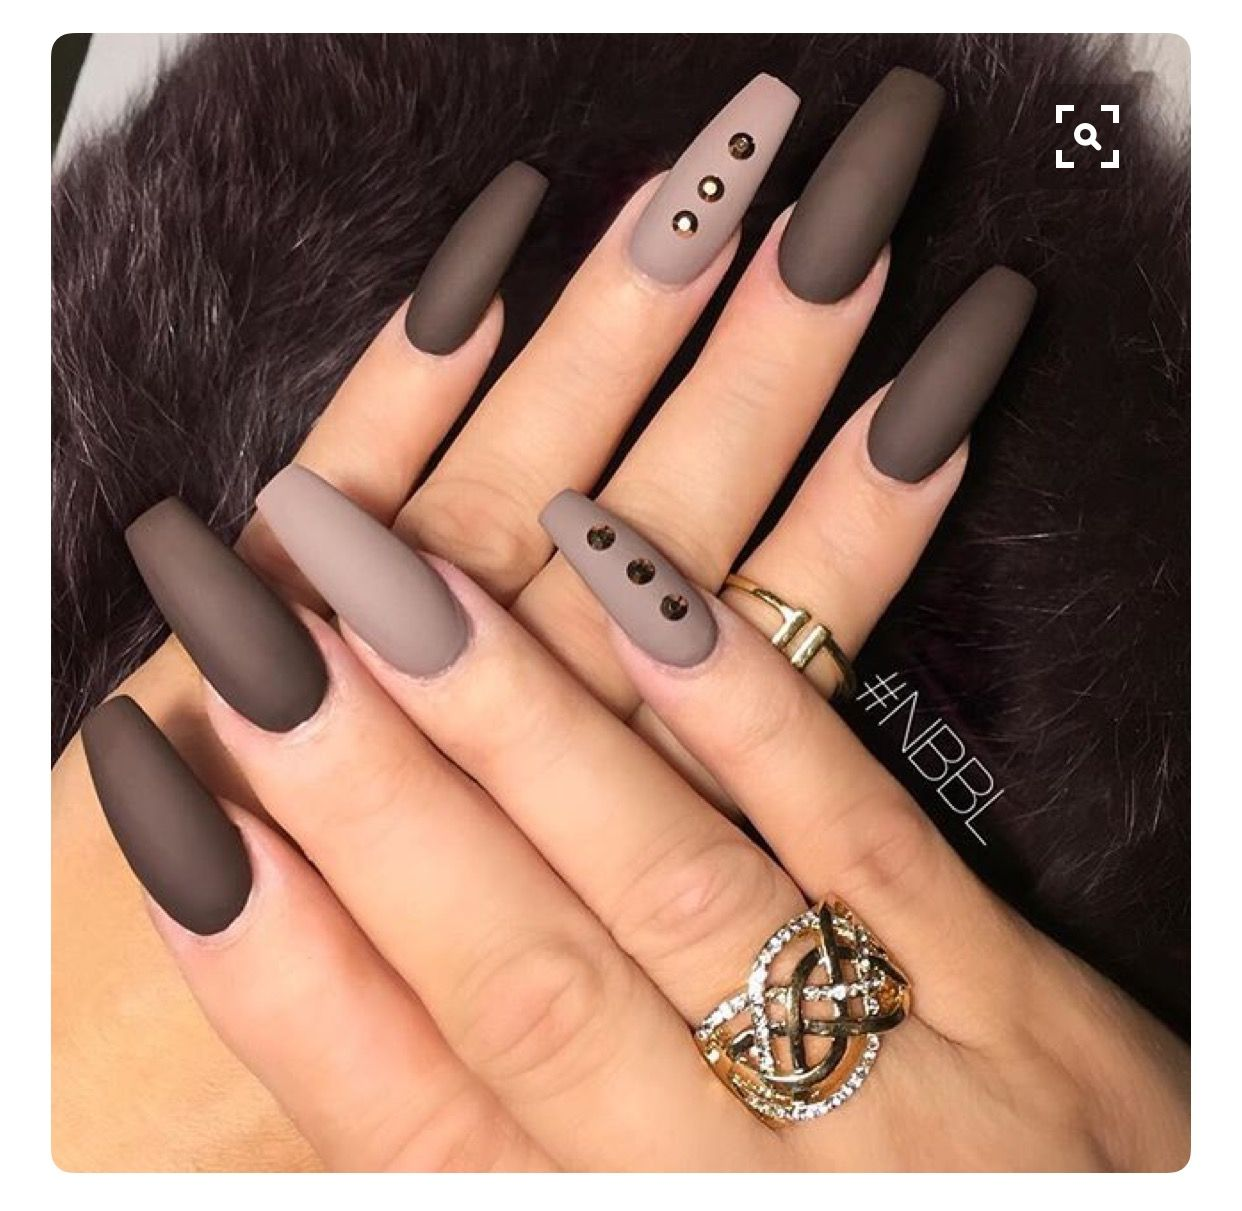 Pin by Hajni Czár on Nails | Pinterest | Nail nail, Make up and Manicure